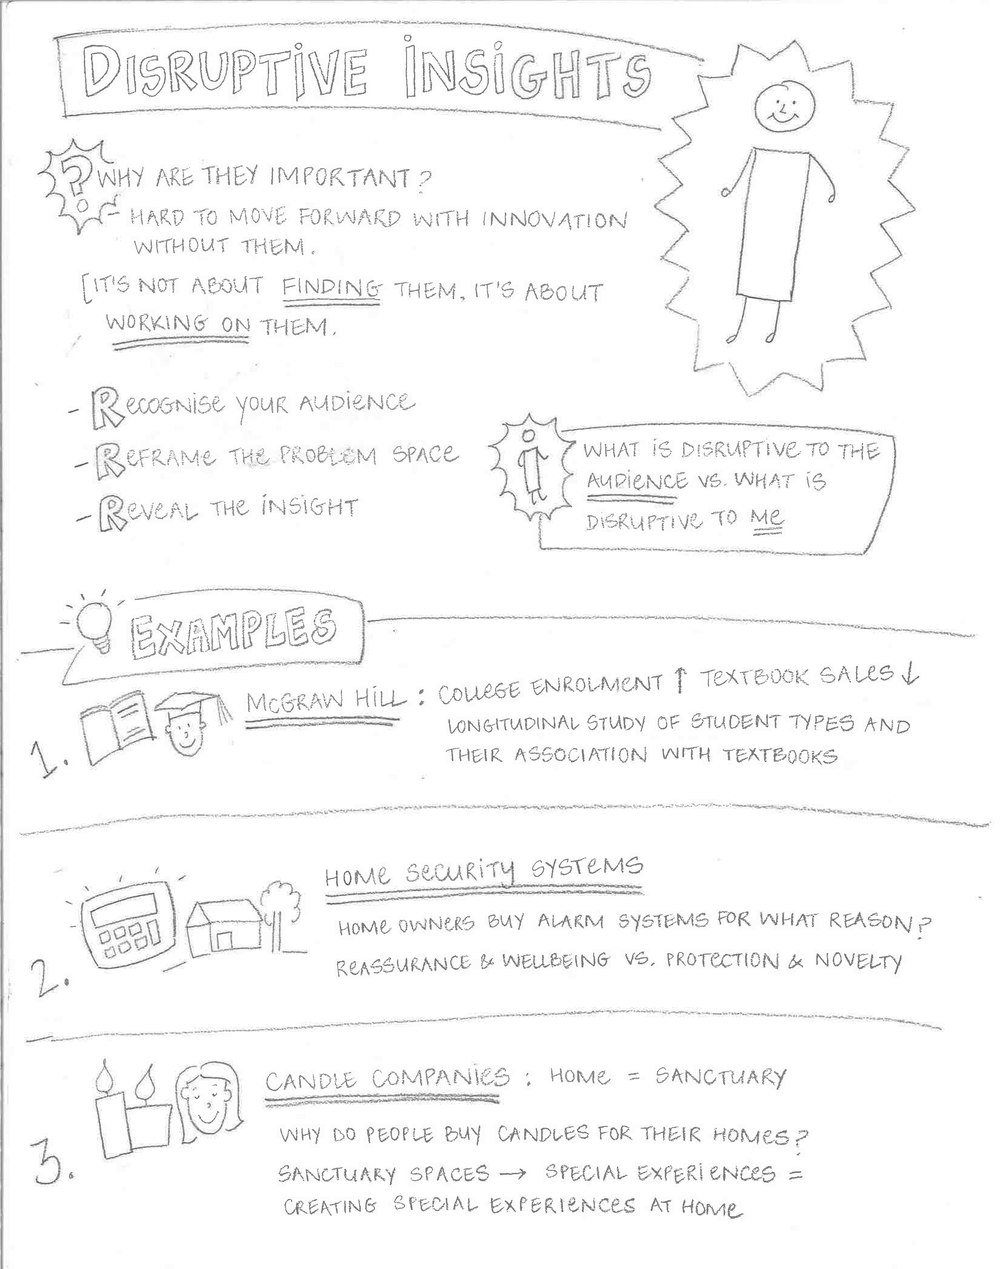 Rhea Rakshit - Disruptive Insights Toolkit_Page_1.jpg